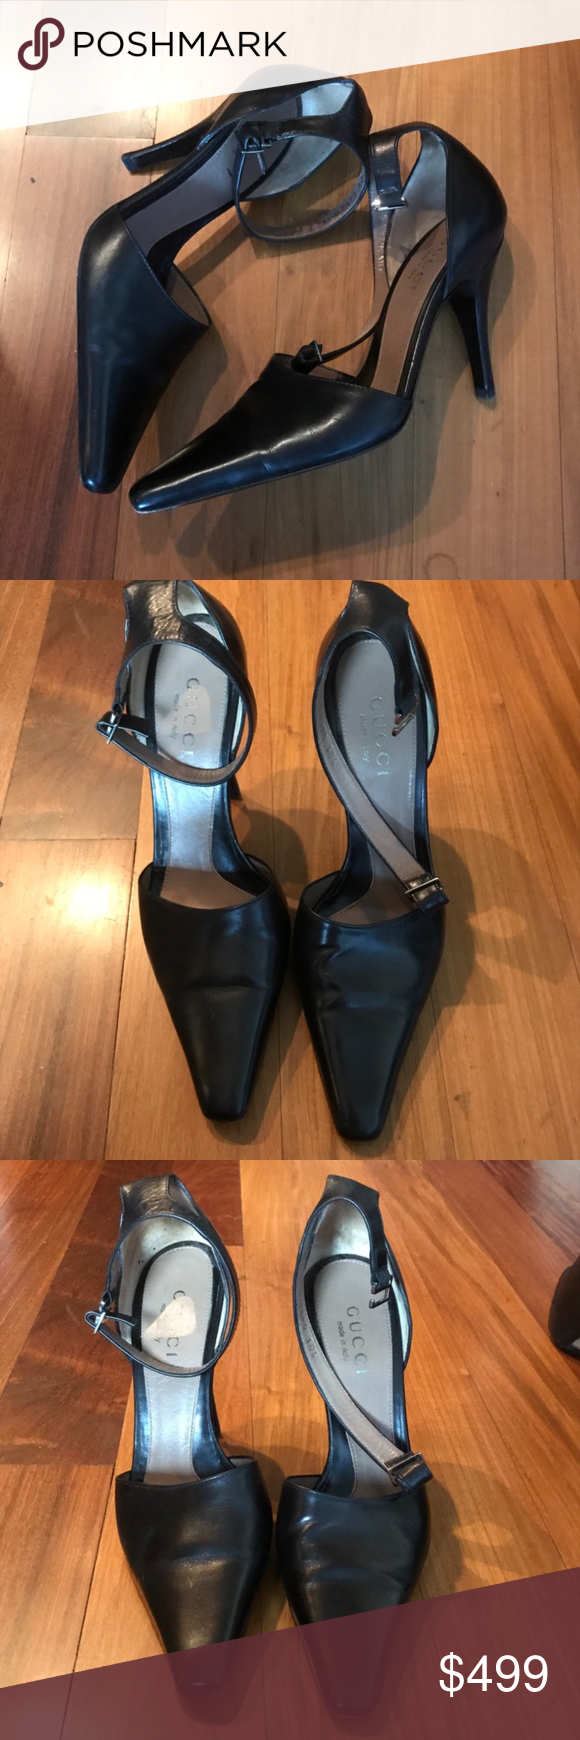 Gucci Black Ankle Strep heels size 7 Authentic beautiful Gucci black ankle strip pumps. These are timeless and gorgeous. Excellent condition! Gucci Shoes Heels